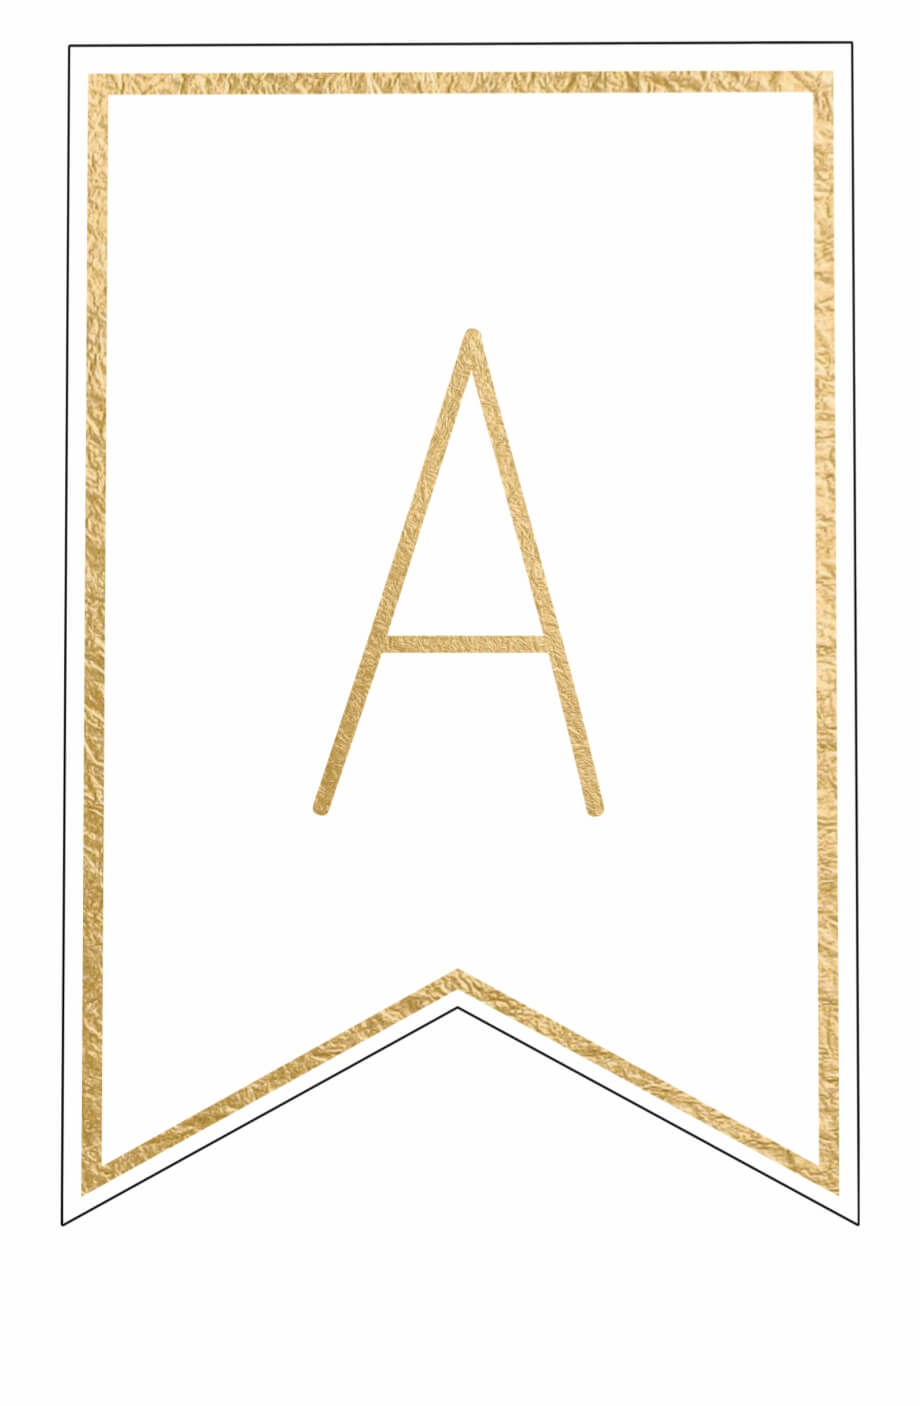 Free Printable Banner Letters Template - Letter Png Gold Within Printable Letter Templates For Banners